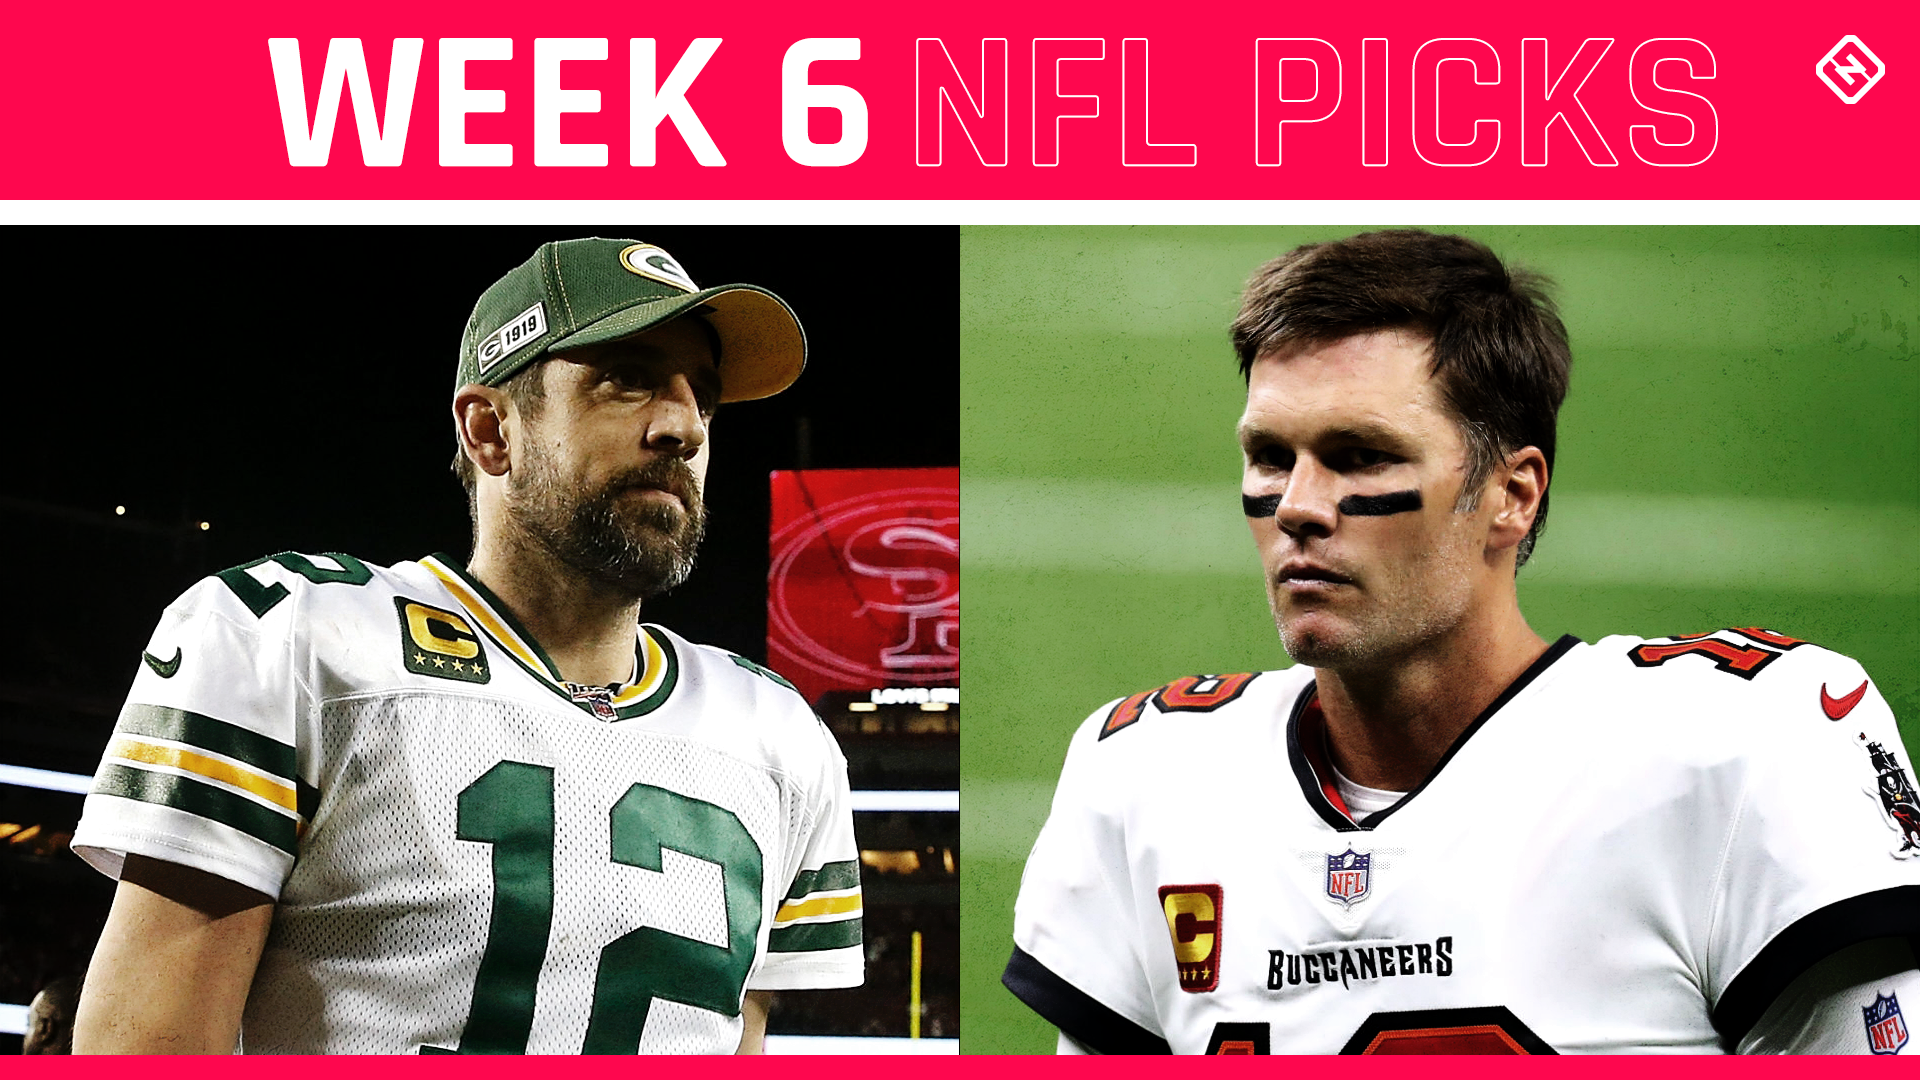 NFL picks, predictions against the spread for Week 6